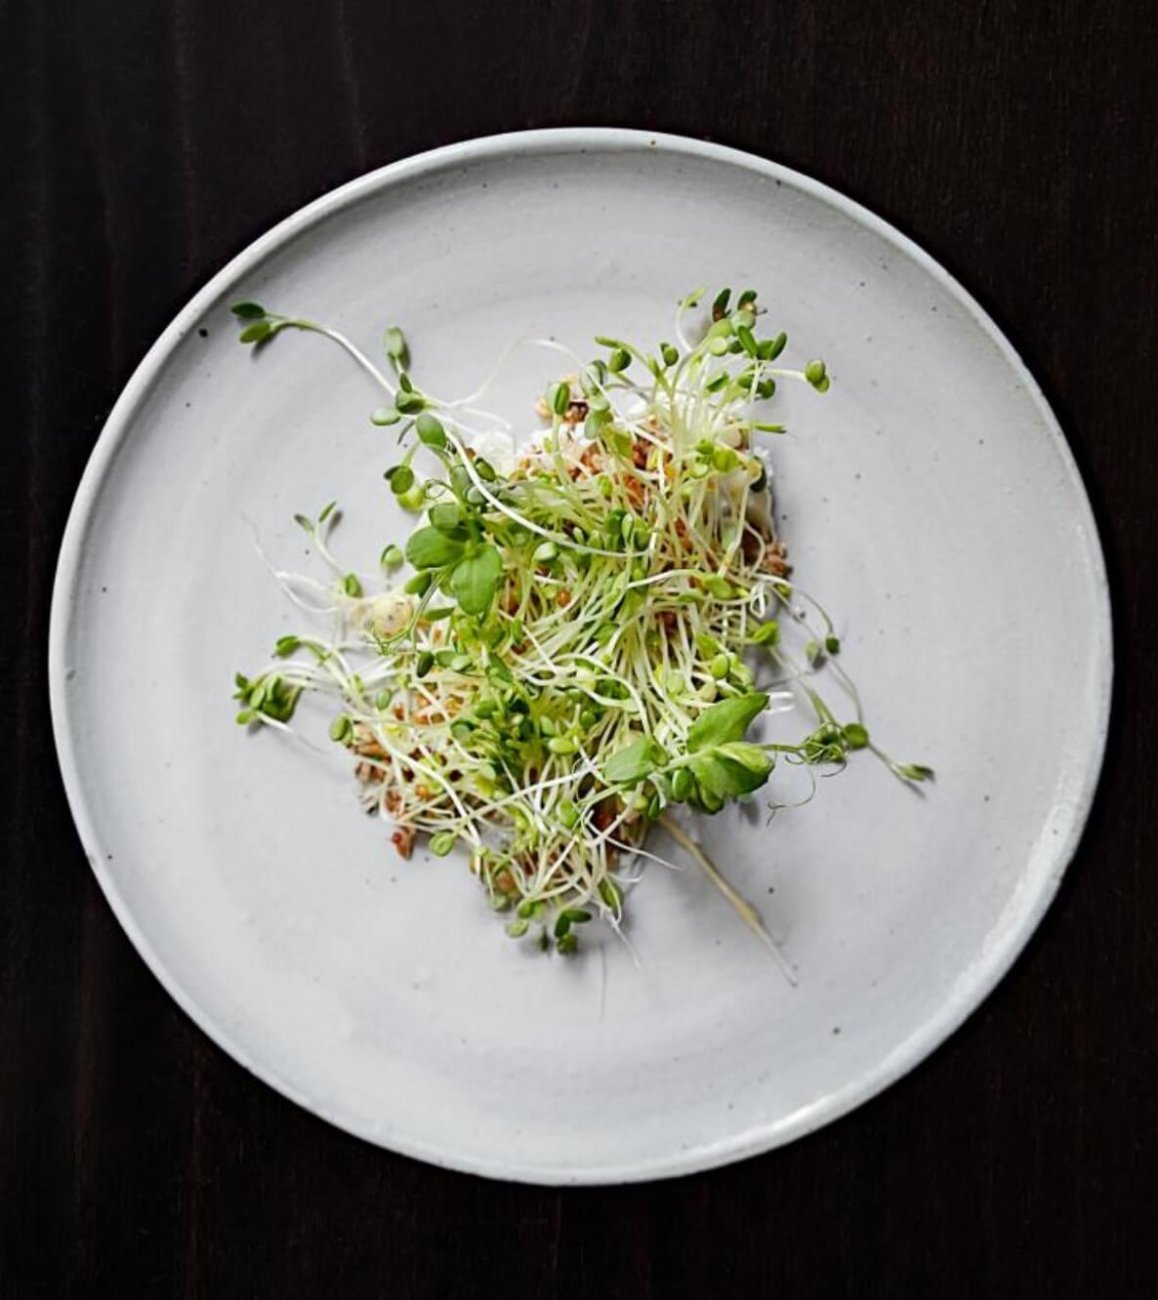 GRAINS, YOGURT, SPROUTS